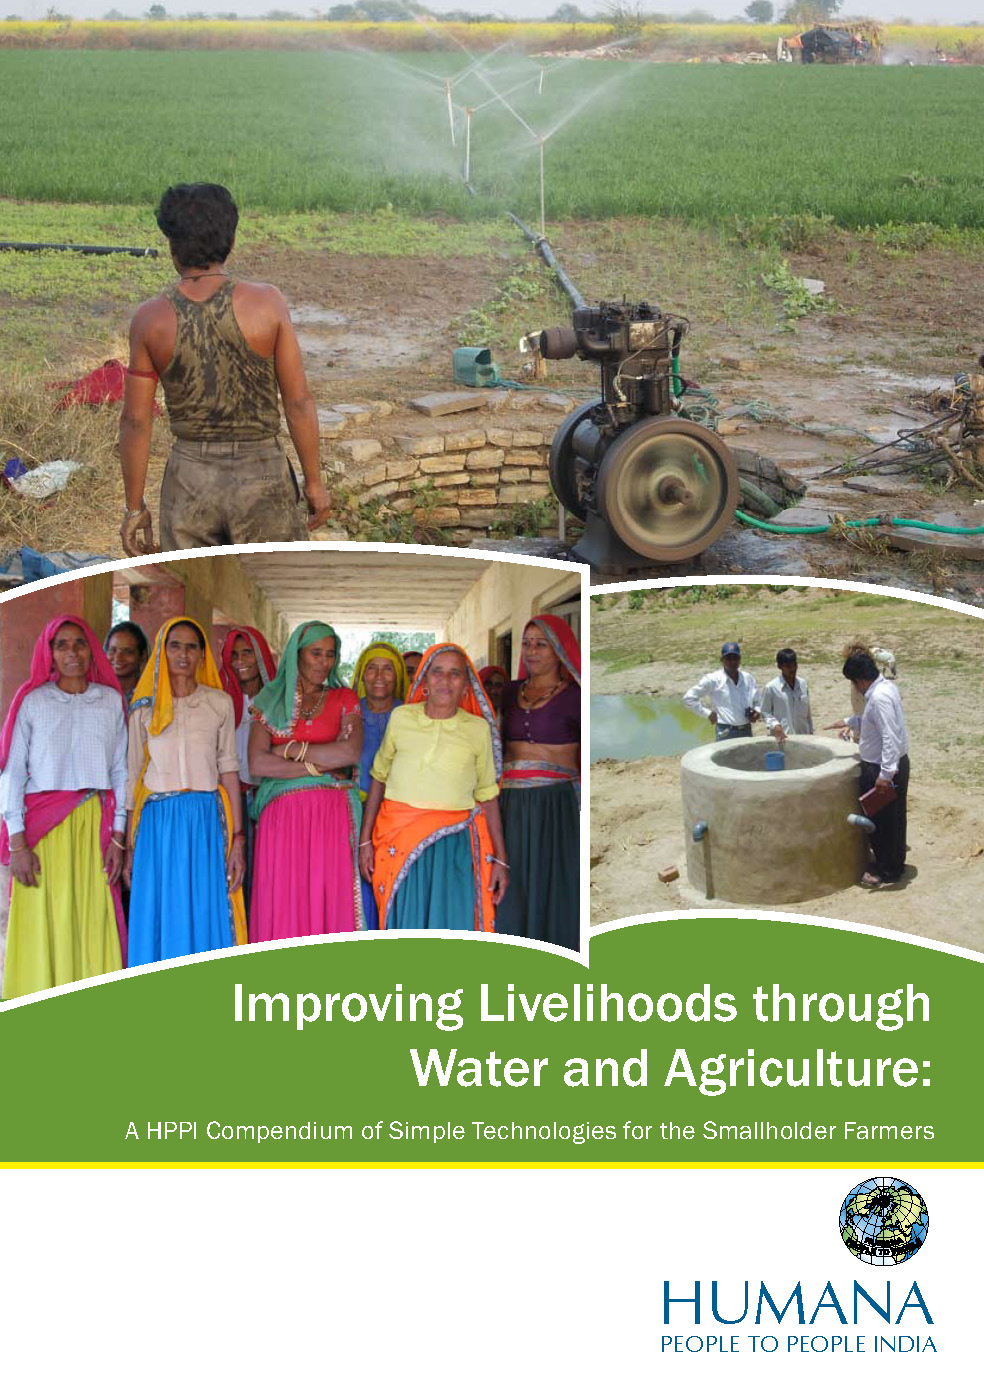 Improving Livelihoods through Water and Agriculture